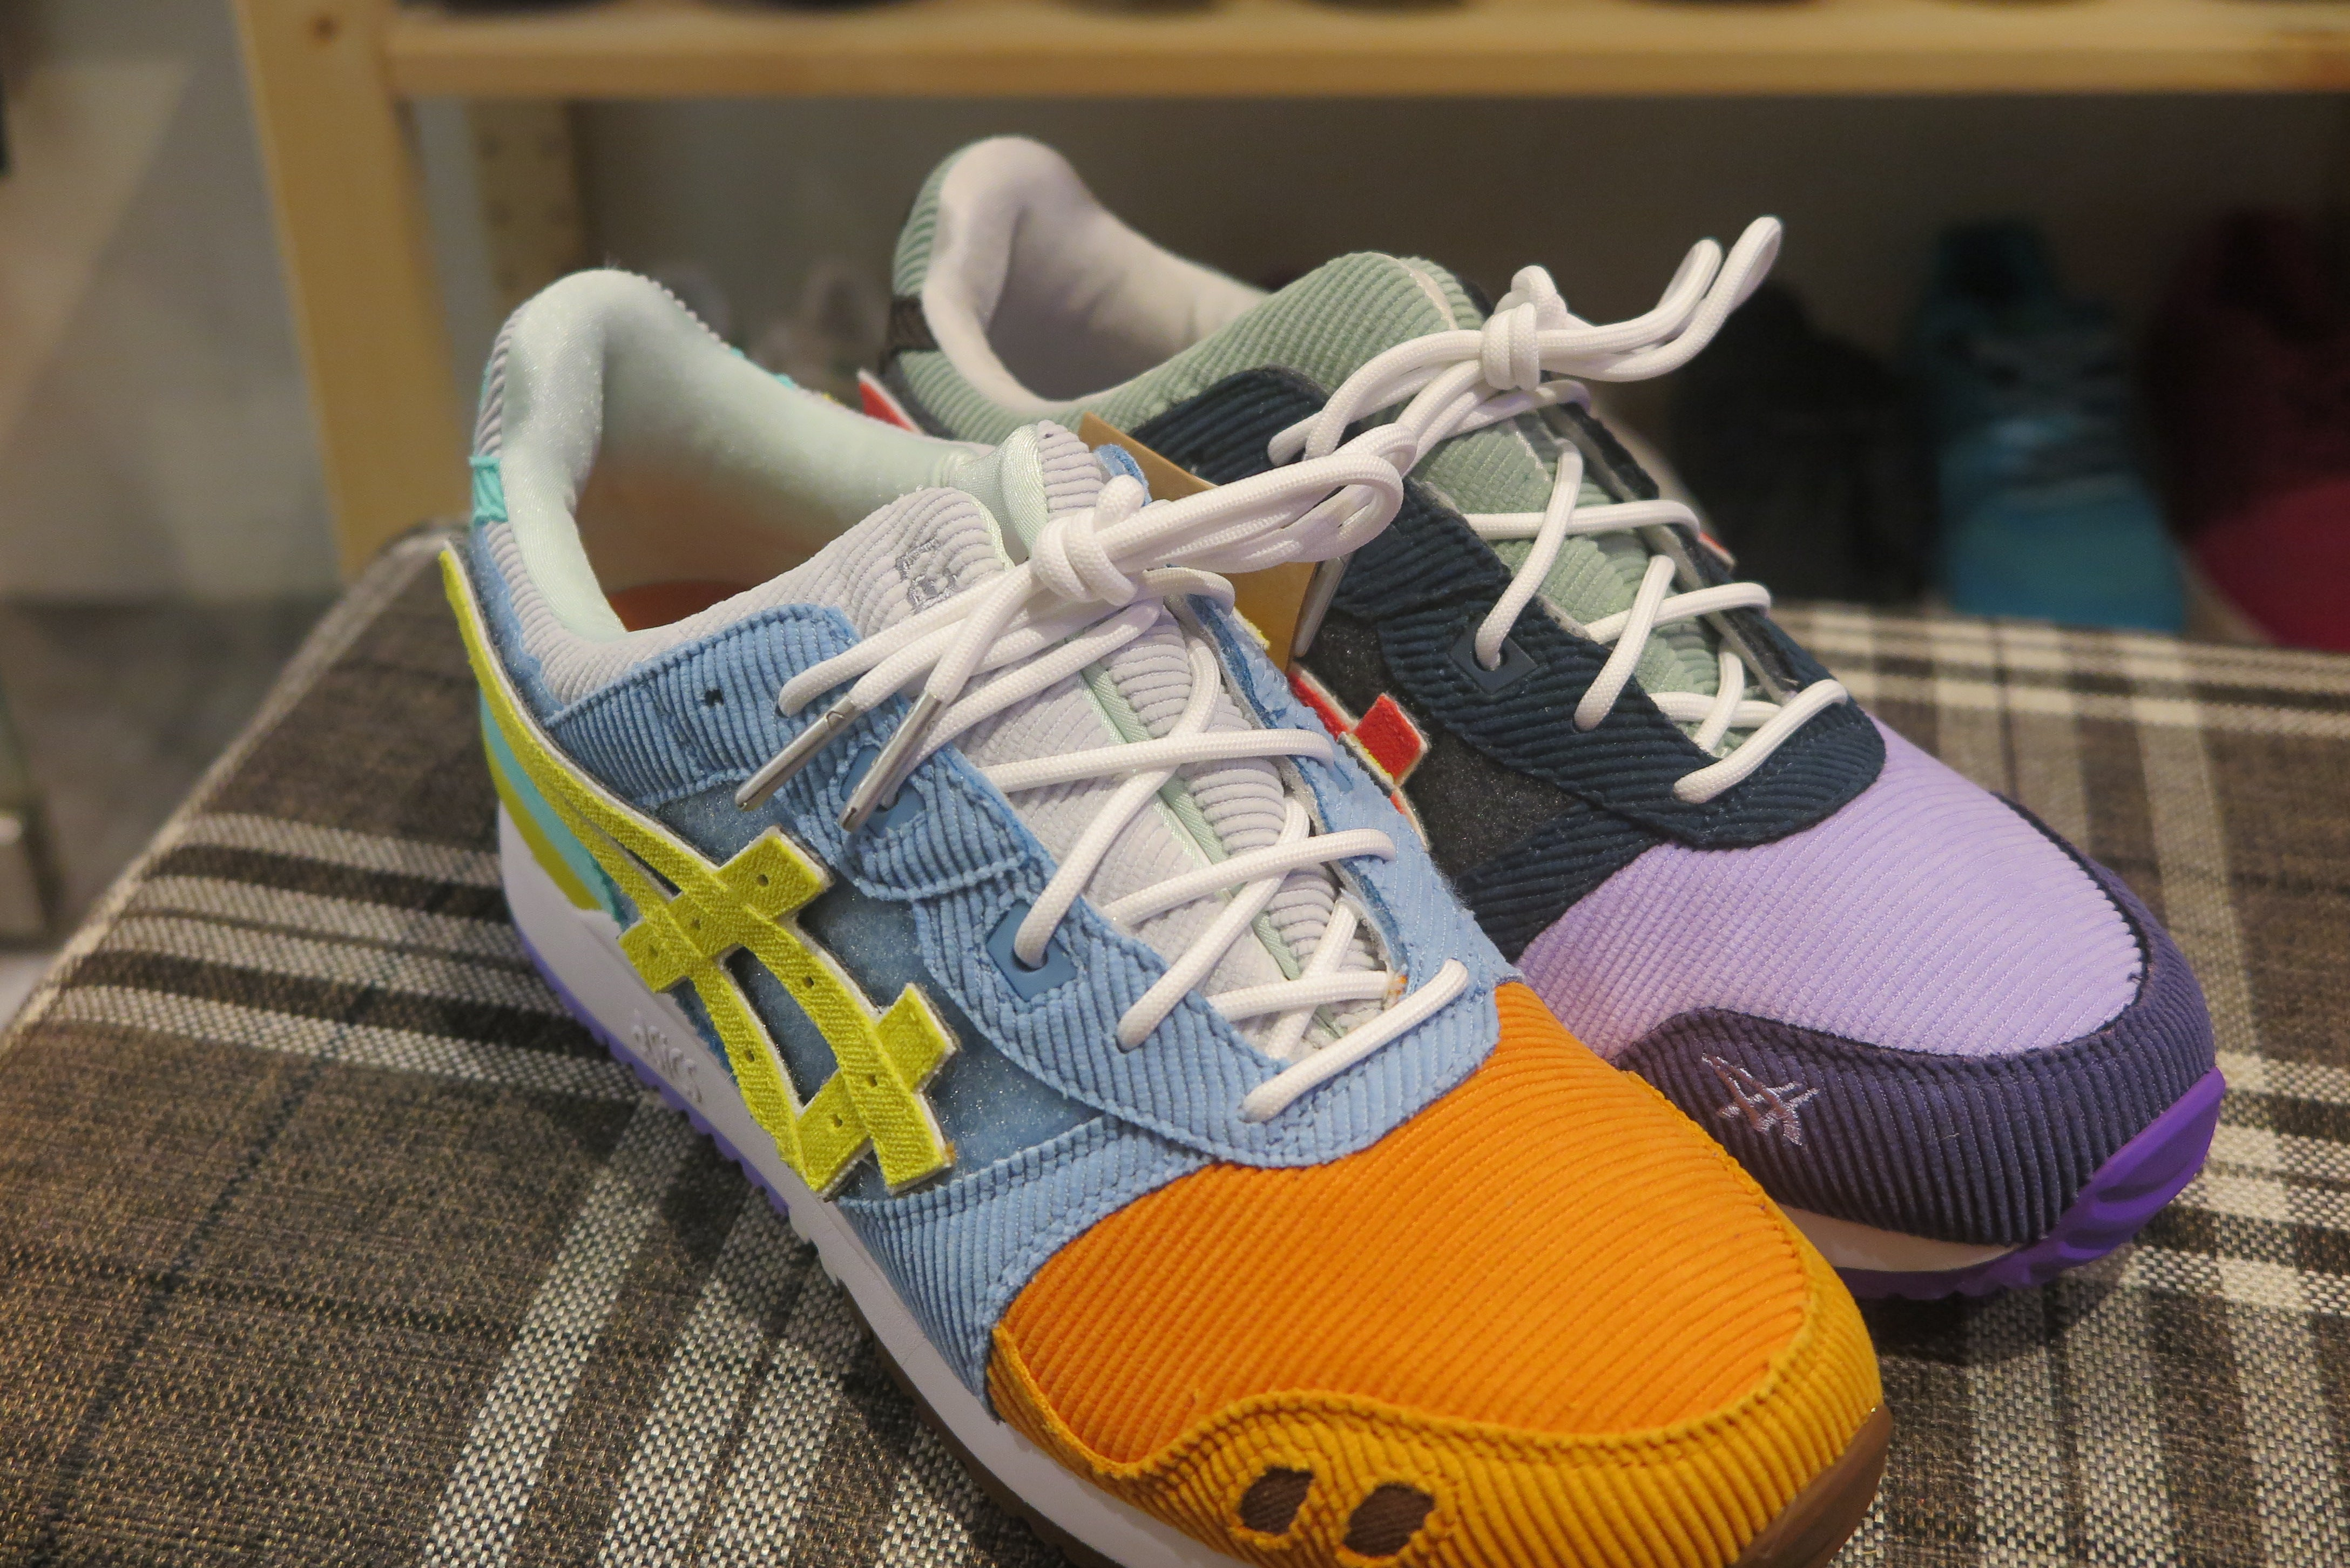 Atmos x Sean Wotherspoon x Asics Gel Lyte III OG - Multi #1203A019-000-Sneakers-Navy Selected Shop